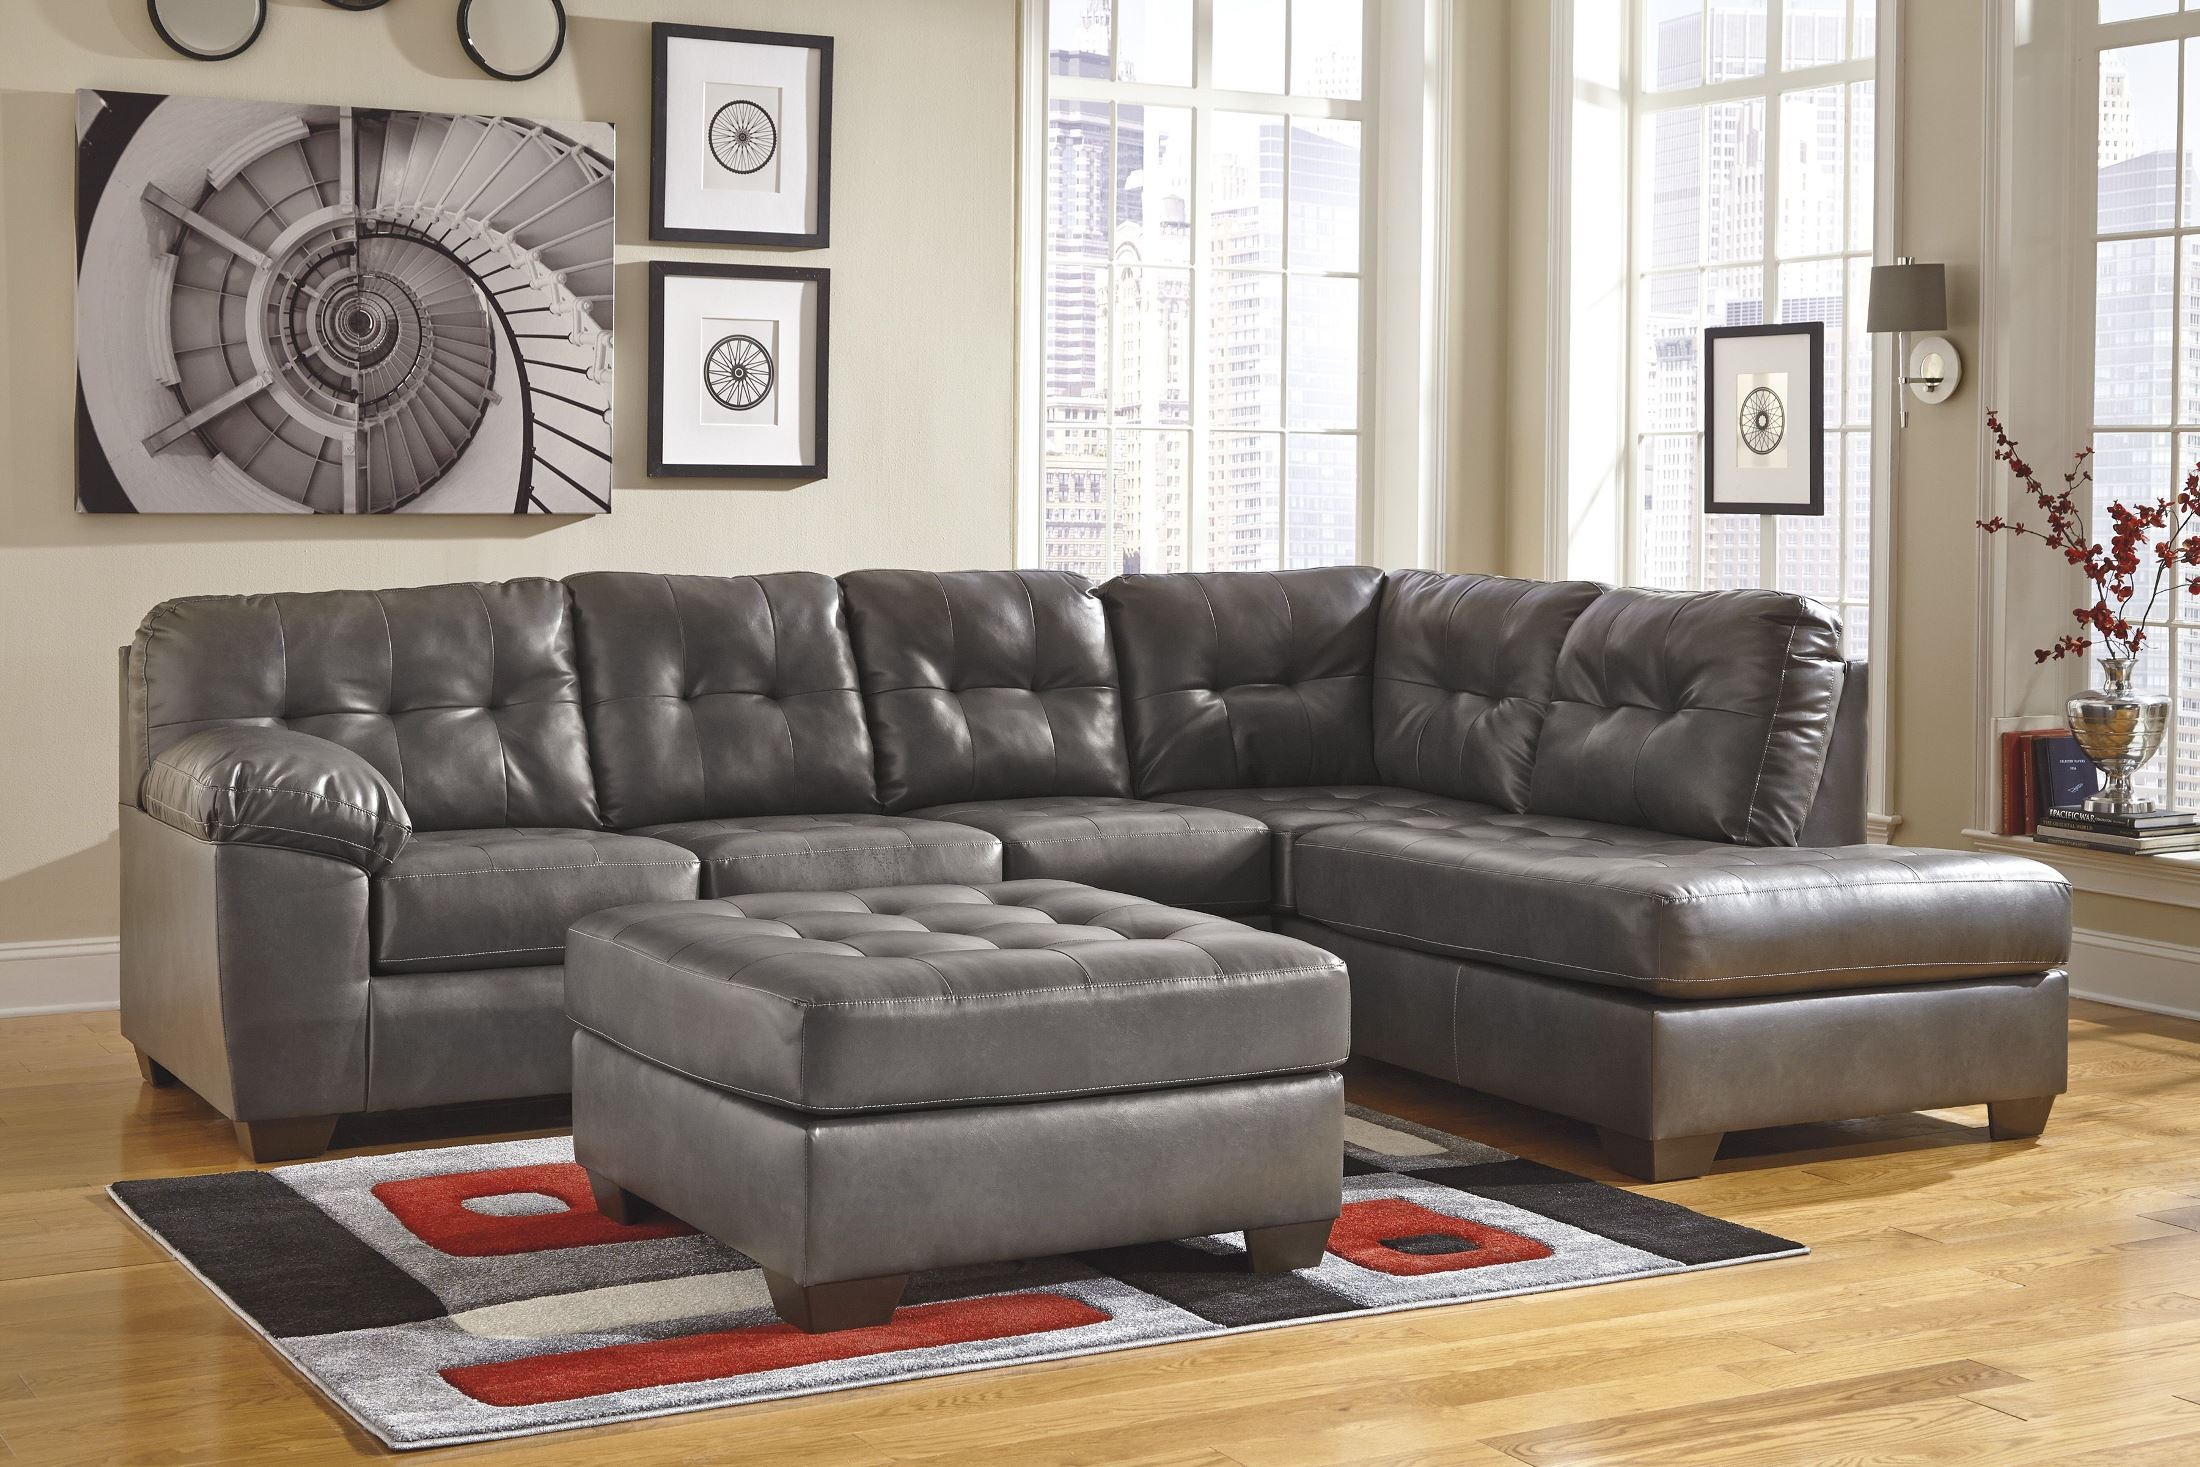 Alliston Durablend Gray Raf Sectional From Ashley 20102